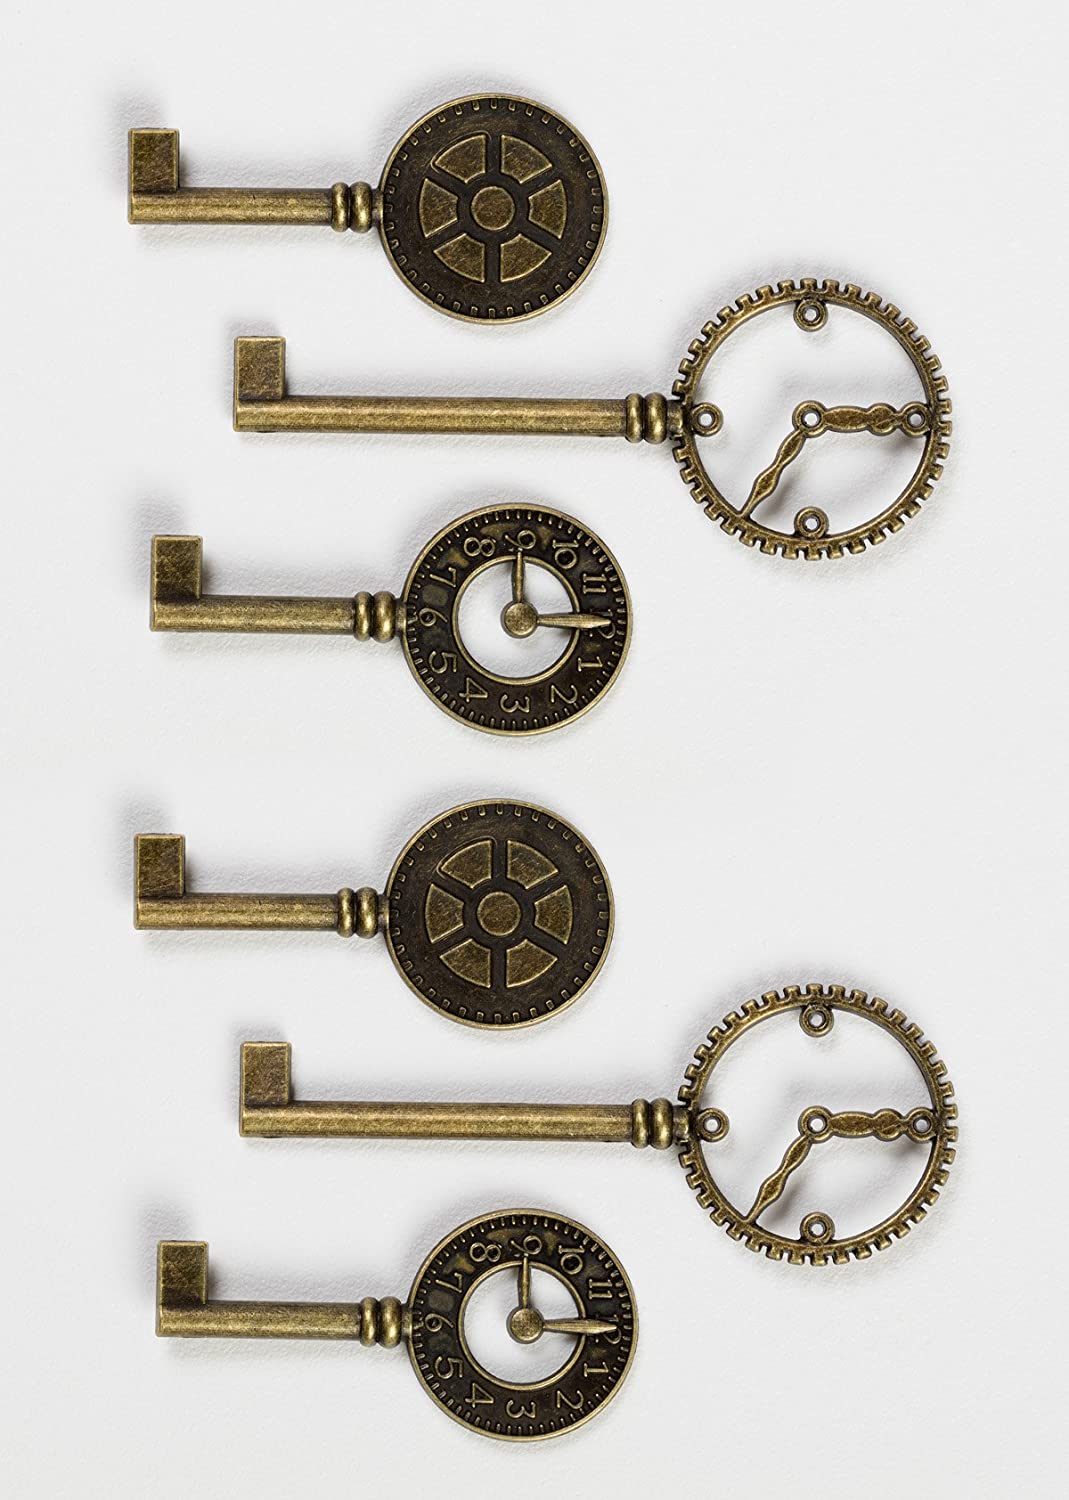 Graphic 45 260614 Staples Metal Clock Keys 6// Package Antique Brass 2X1 to 3X1.125